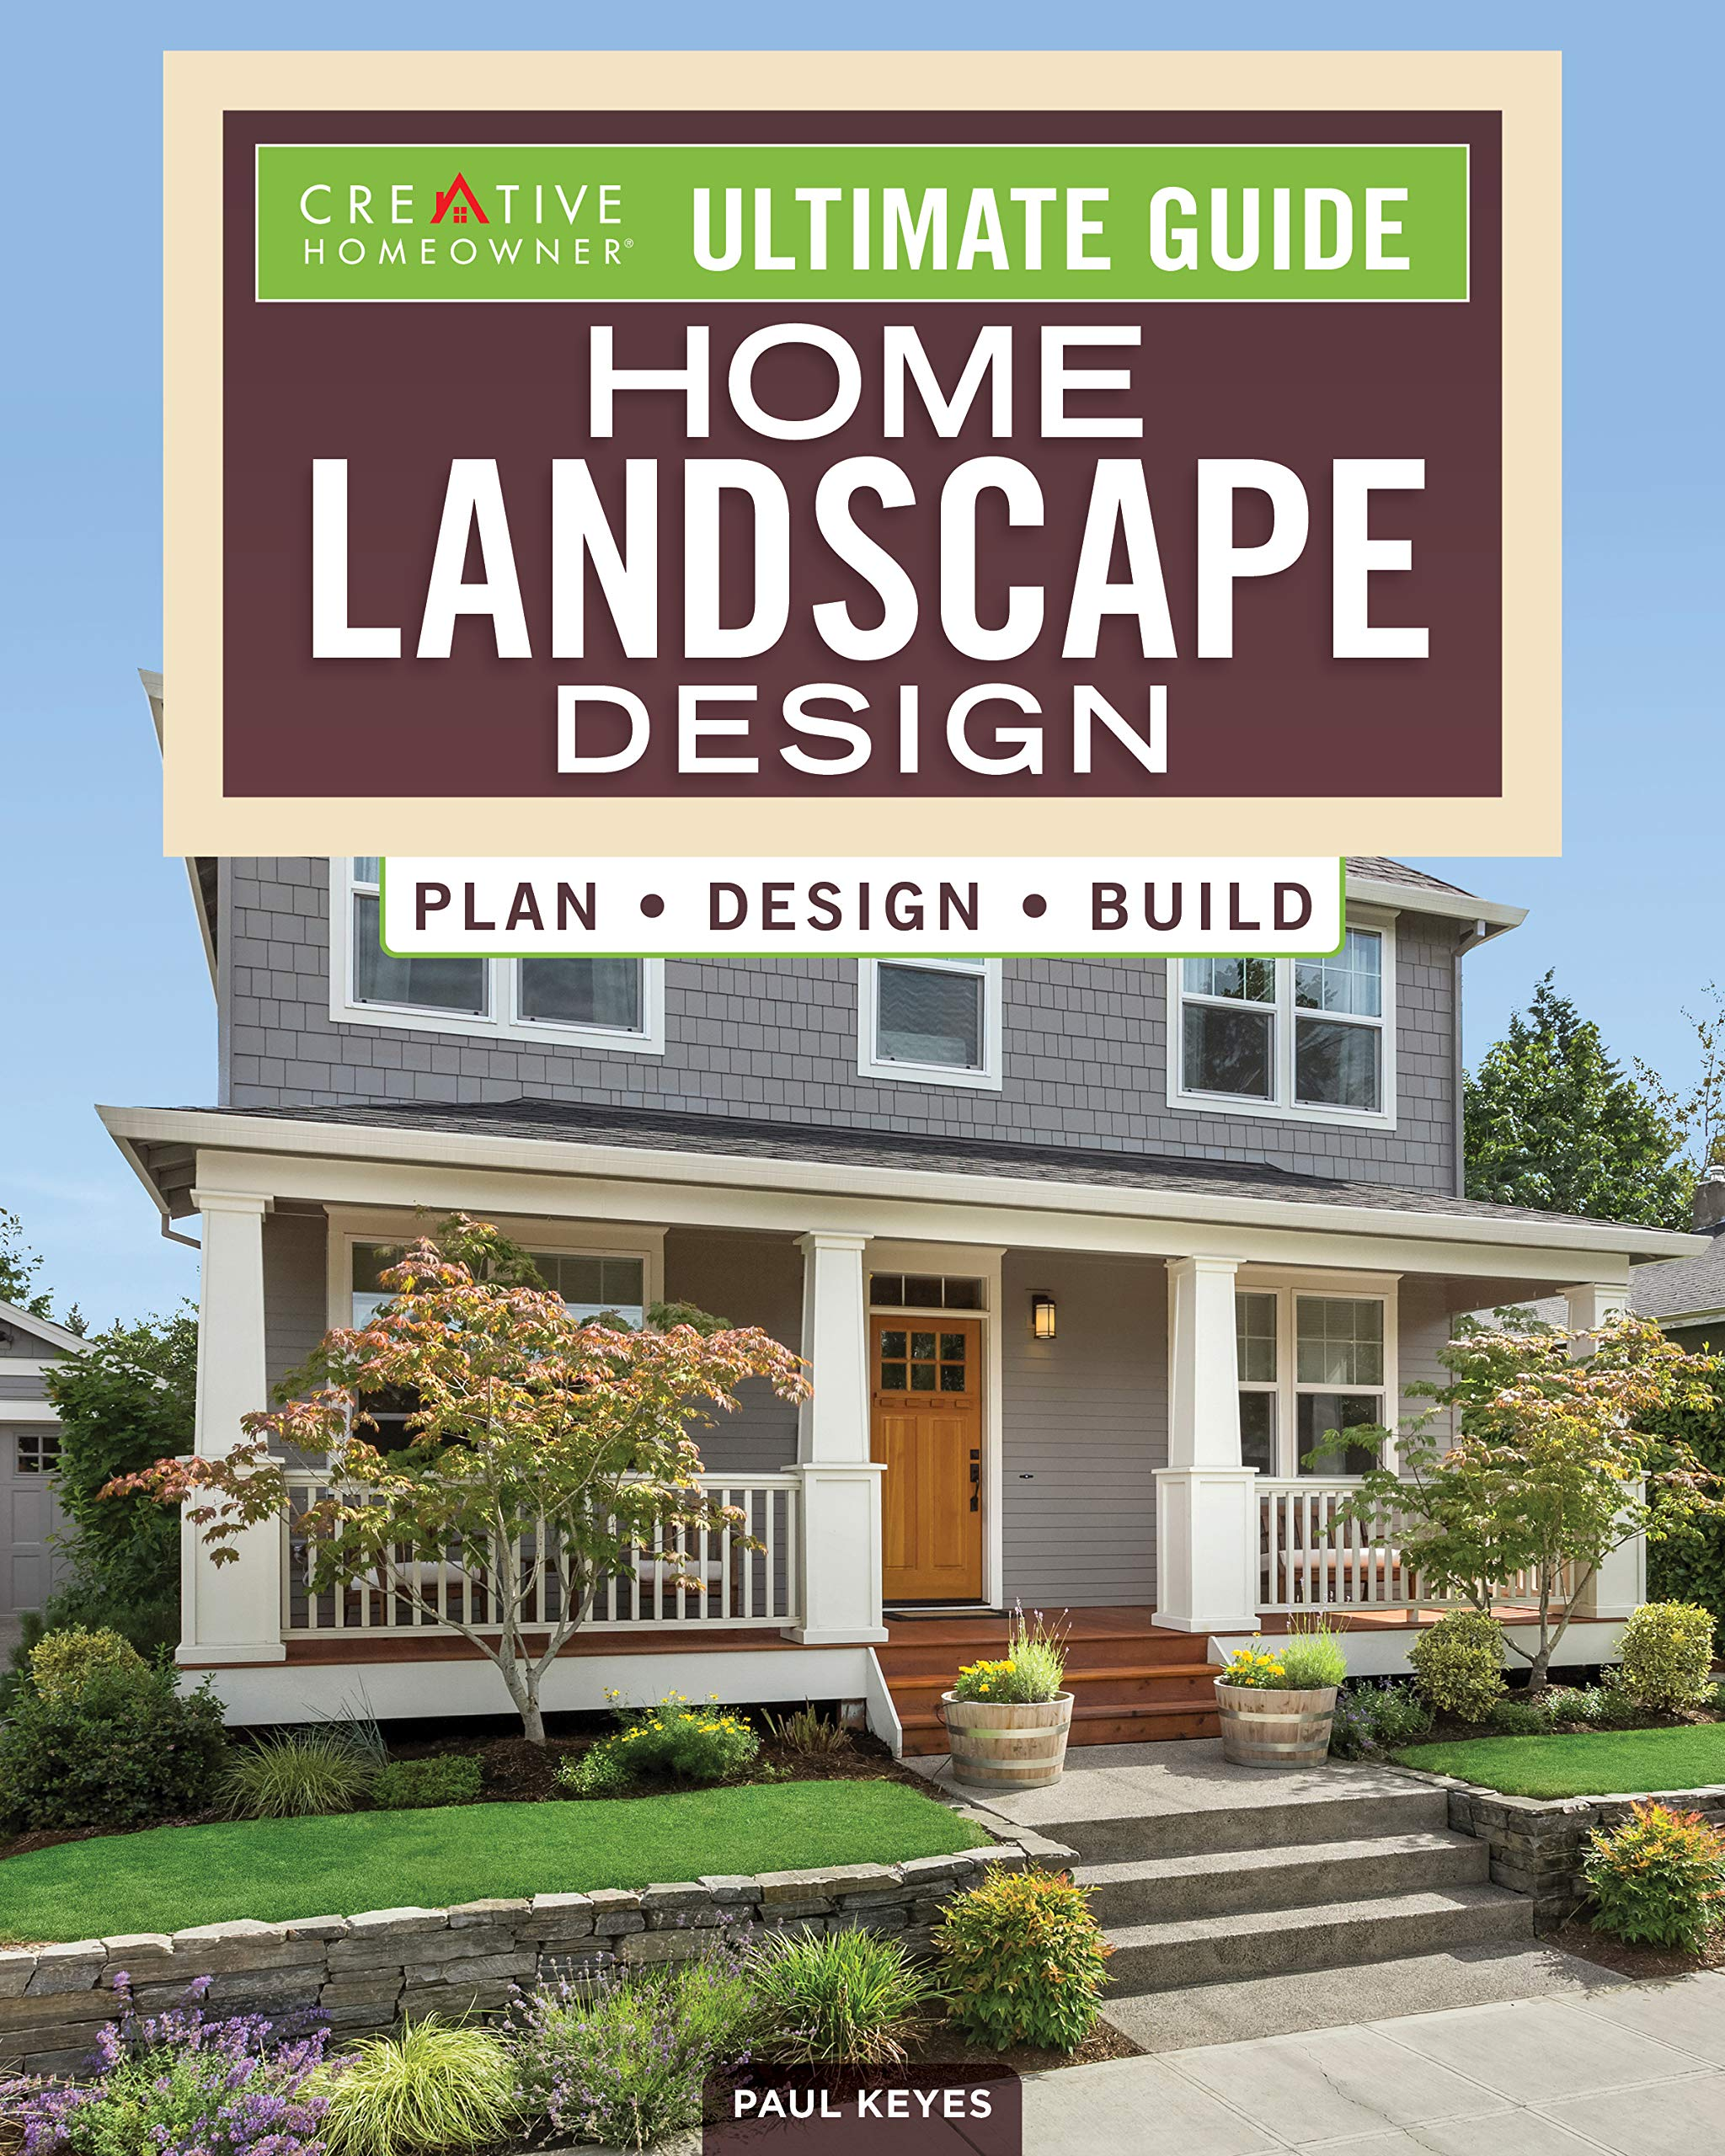 Ultimate Guide Home Landscape Design Plan Design Build Creative Homeowner Comprehensive Resource To Fundamentals Budgeting Installing Planting Hardscaping And More To Create Your Dream Yard Paul Keyes 9781580118644 Amazon Com Books